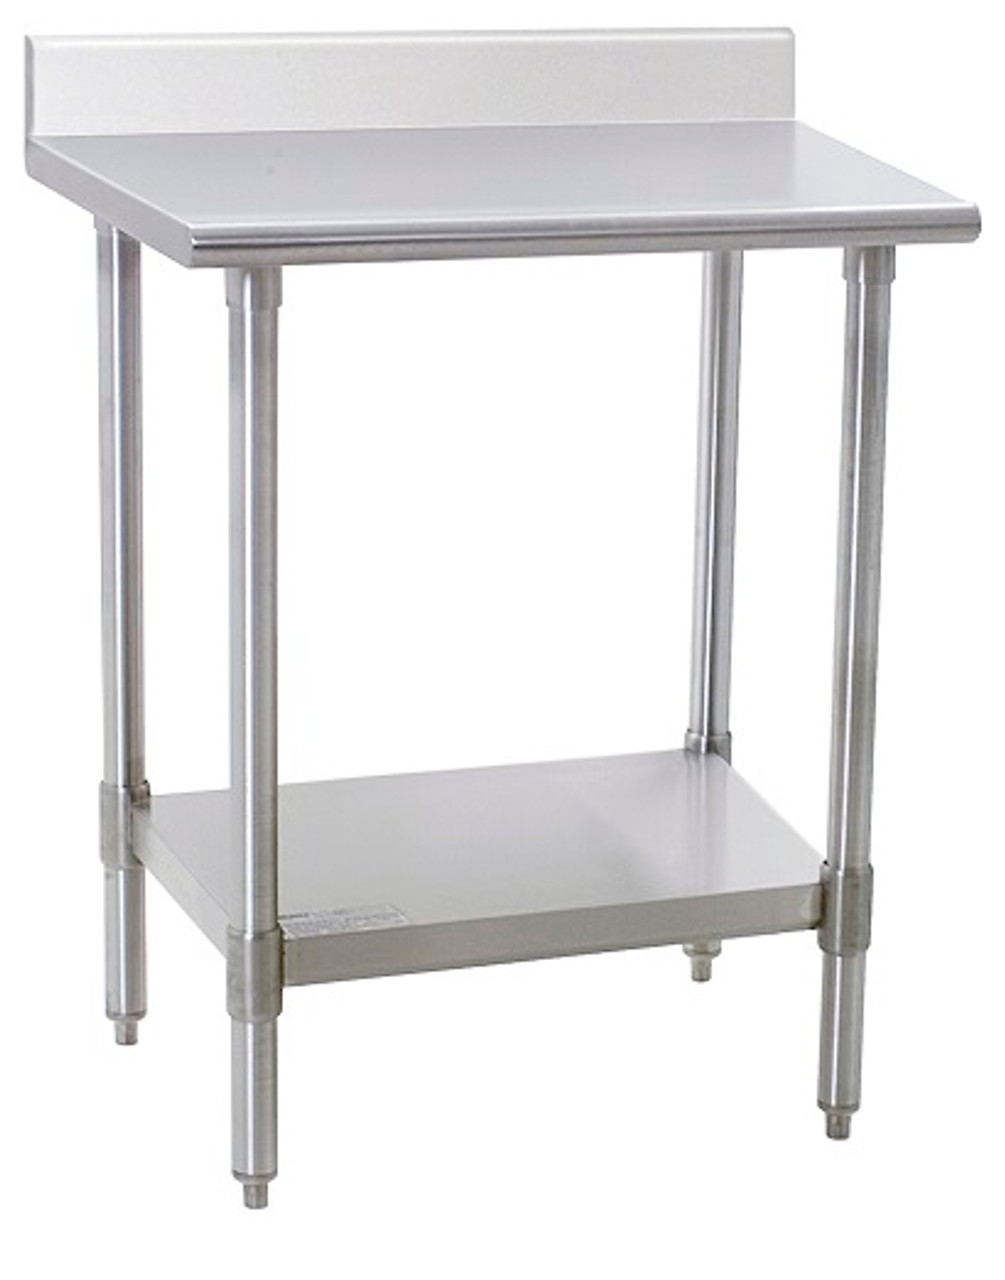 - Stainless Steel Work Tables; Eagle Tables, Type 304 Stainless